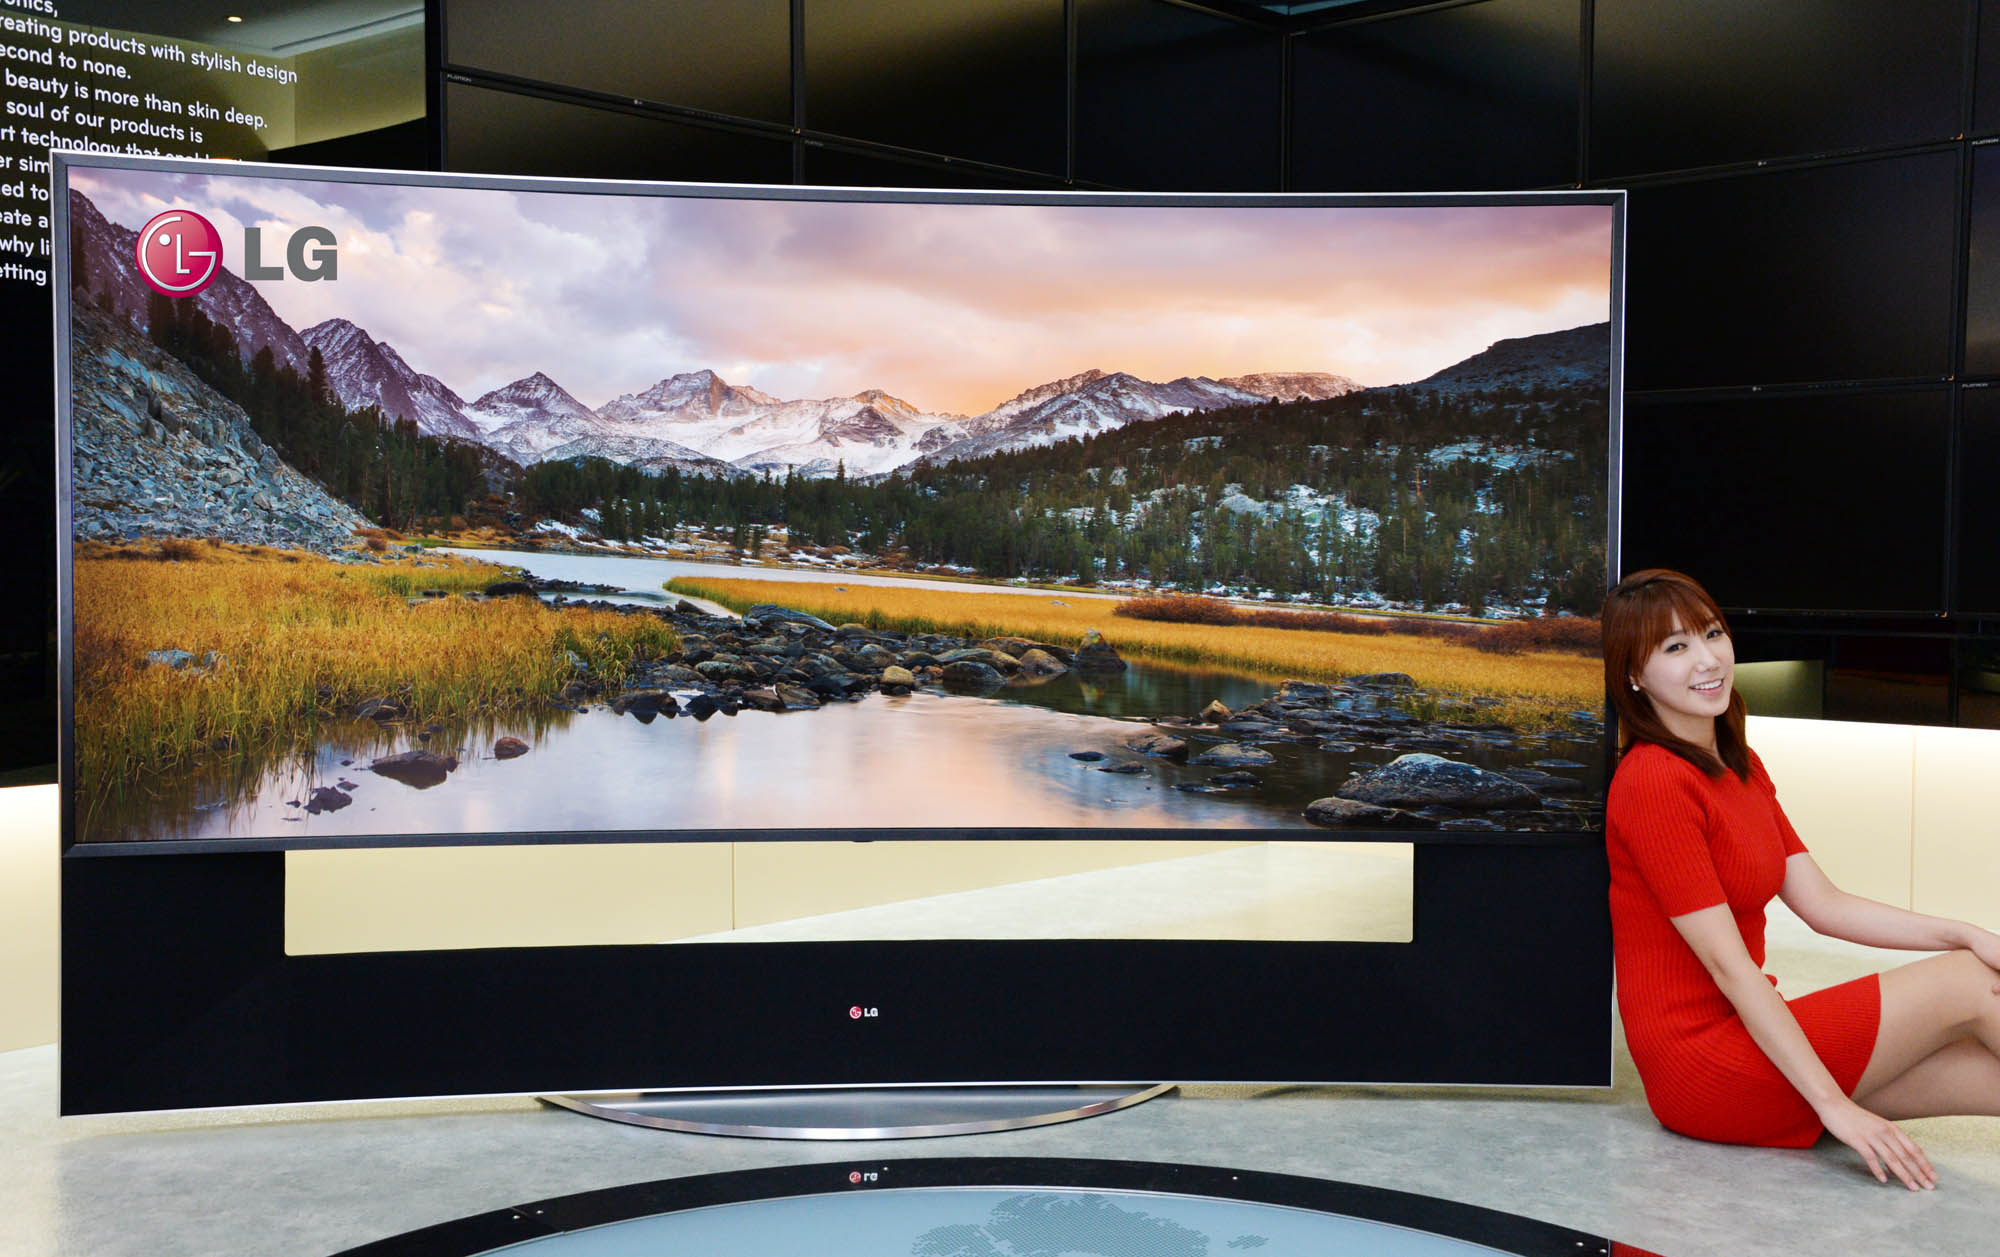 The OLED TV's from LG had some spectacular Displays